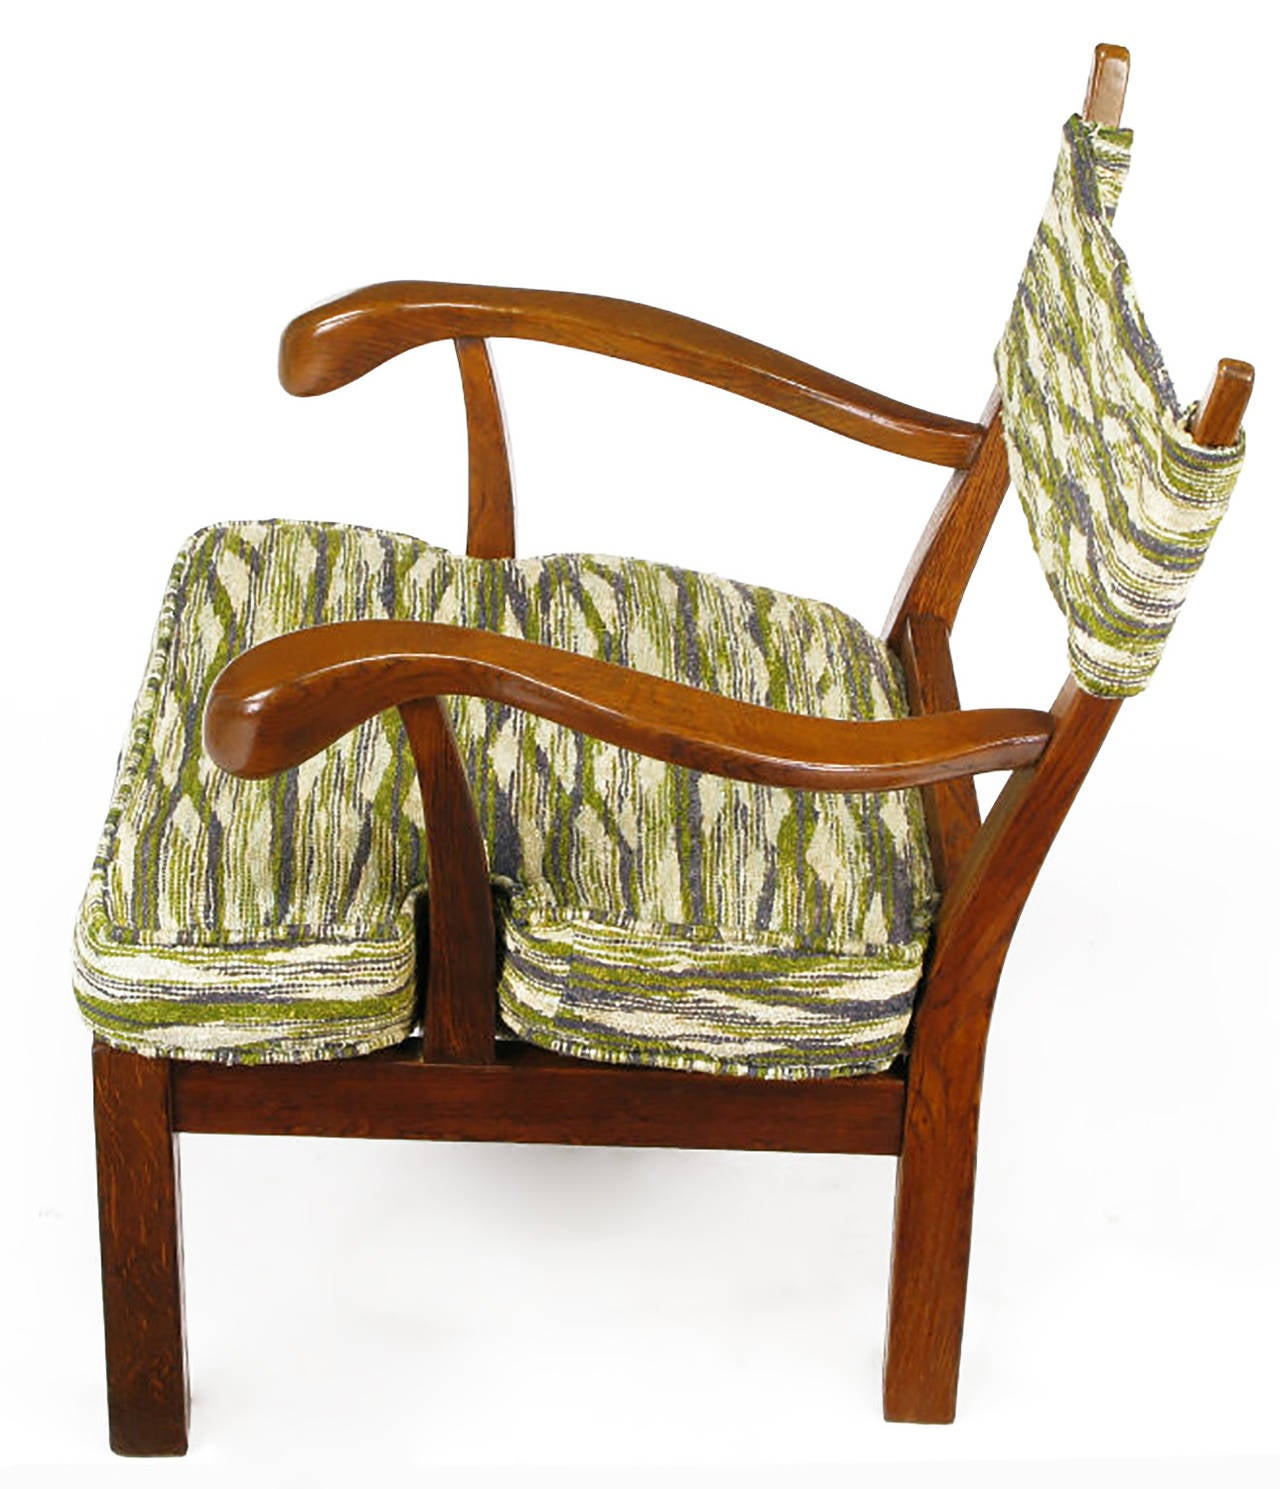 Unusual Studio Carved Oak Armchair in Liebes Style Fabric For Sale 3